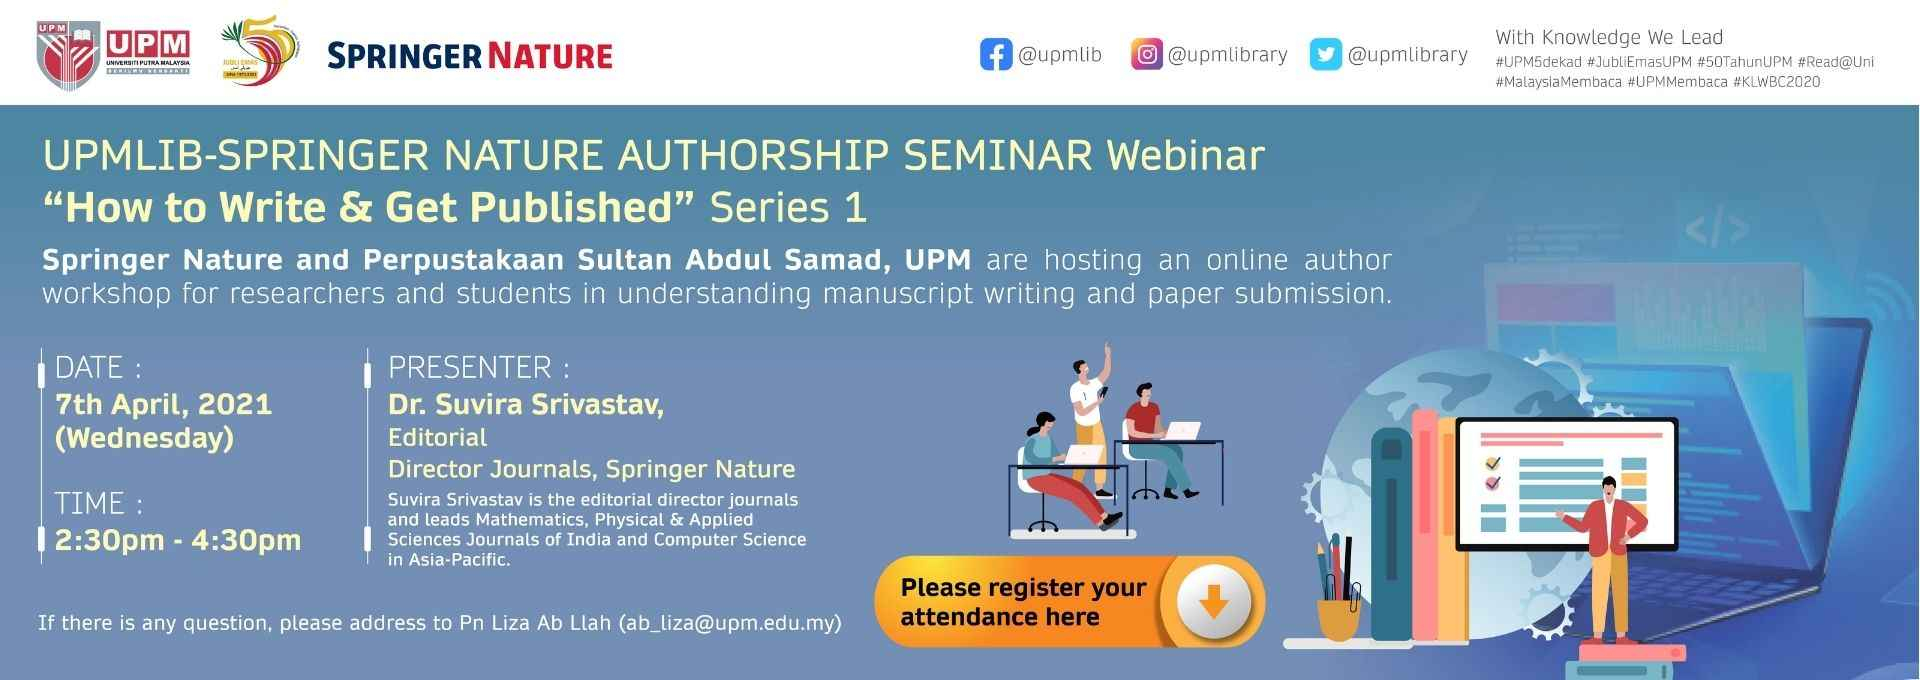 UPMLIB-SPRINGER NATURE AUTHORSHIP SEMINAR Webinar: How to Write & Get  Published - Series 1